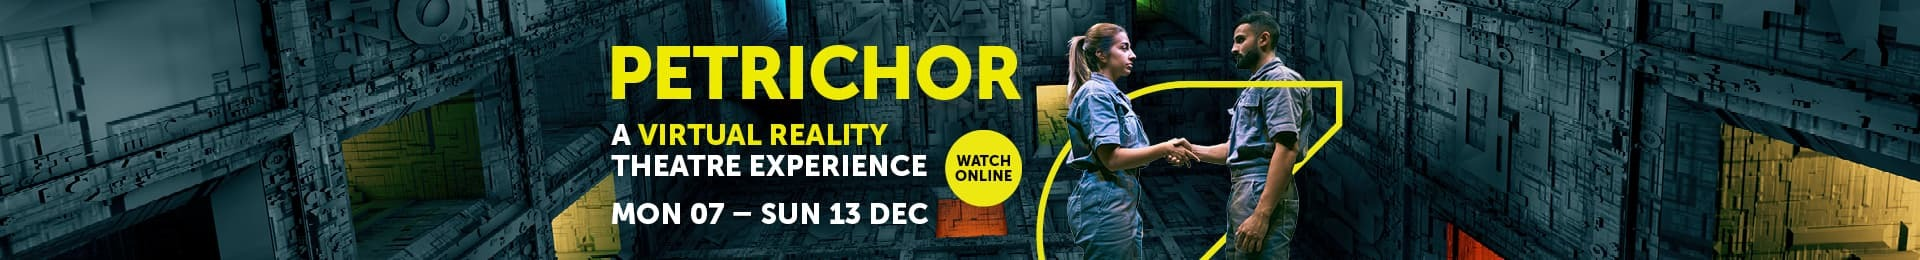 Petrichor: A Virtual Reality Theatre Experience (Online Only) banner image